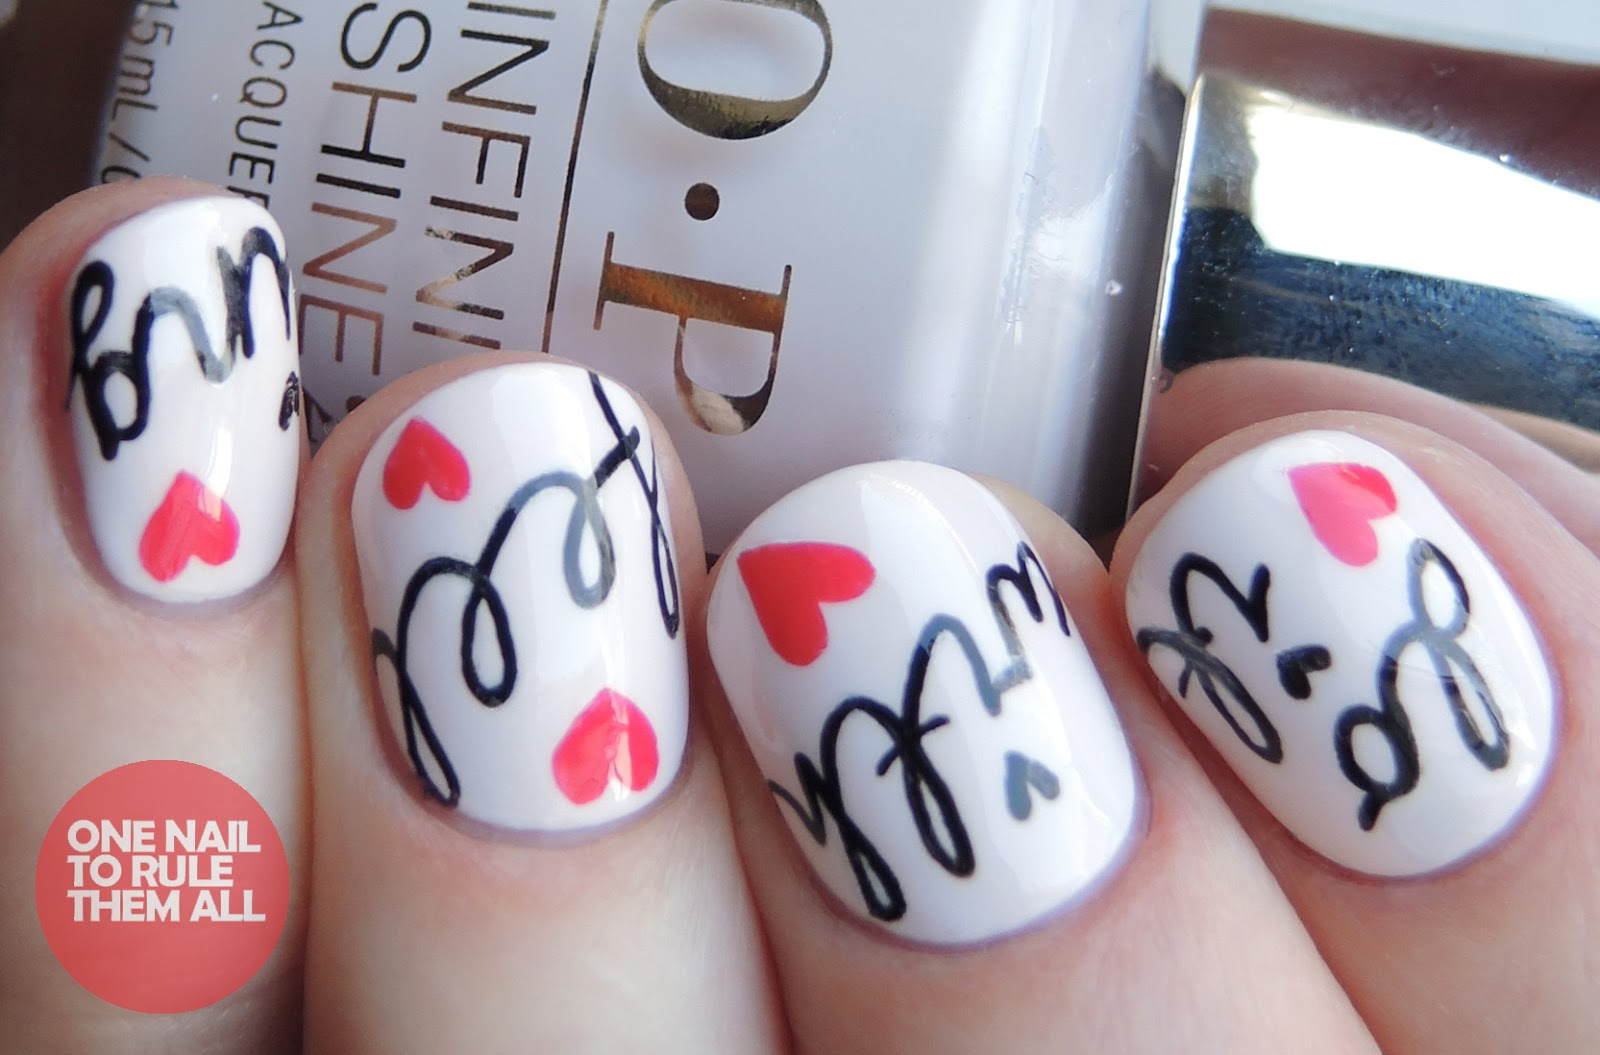 Quotes About Nails. . Quotable Quotes Nails One Direction ...